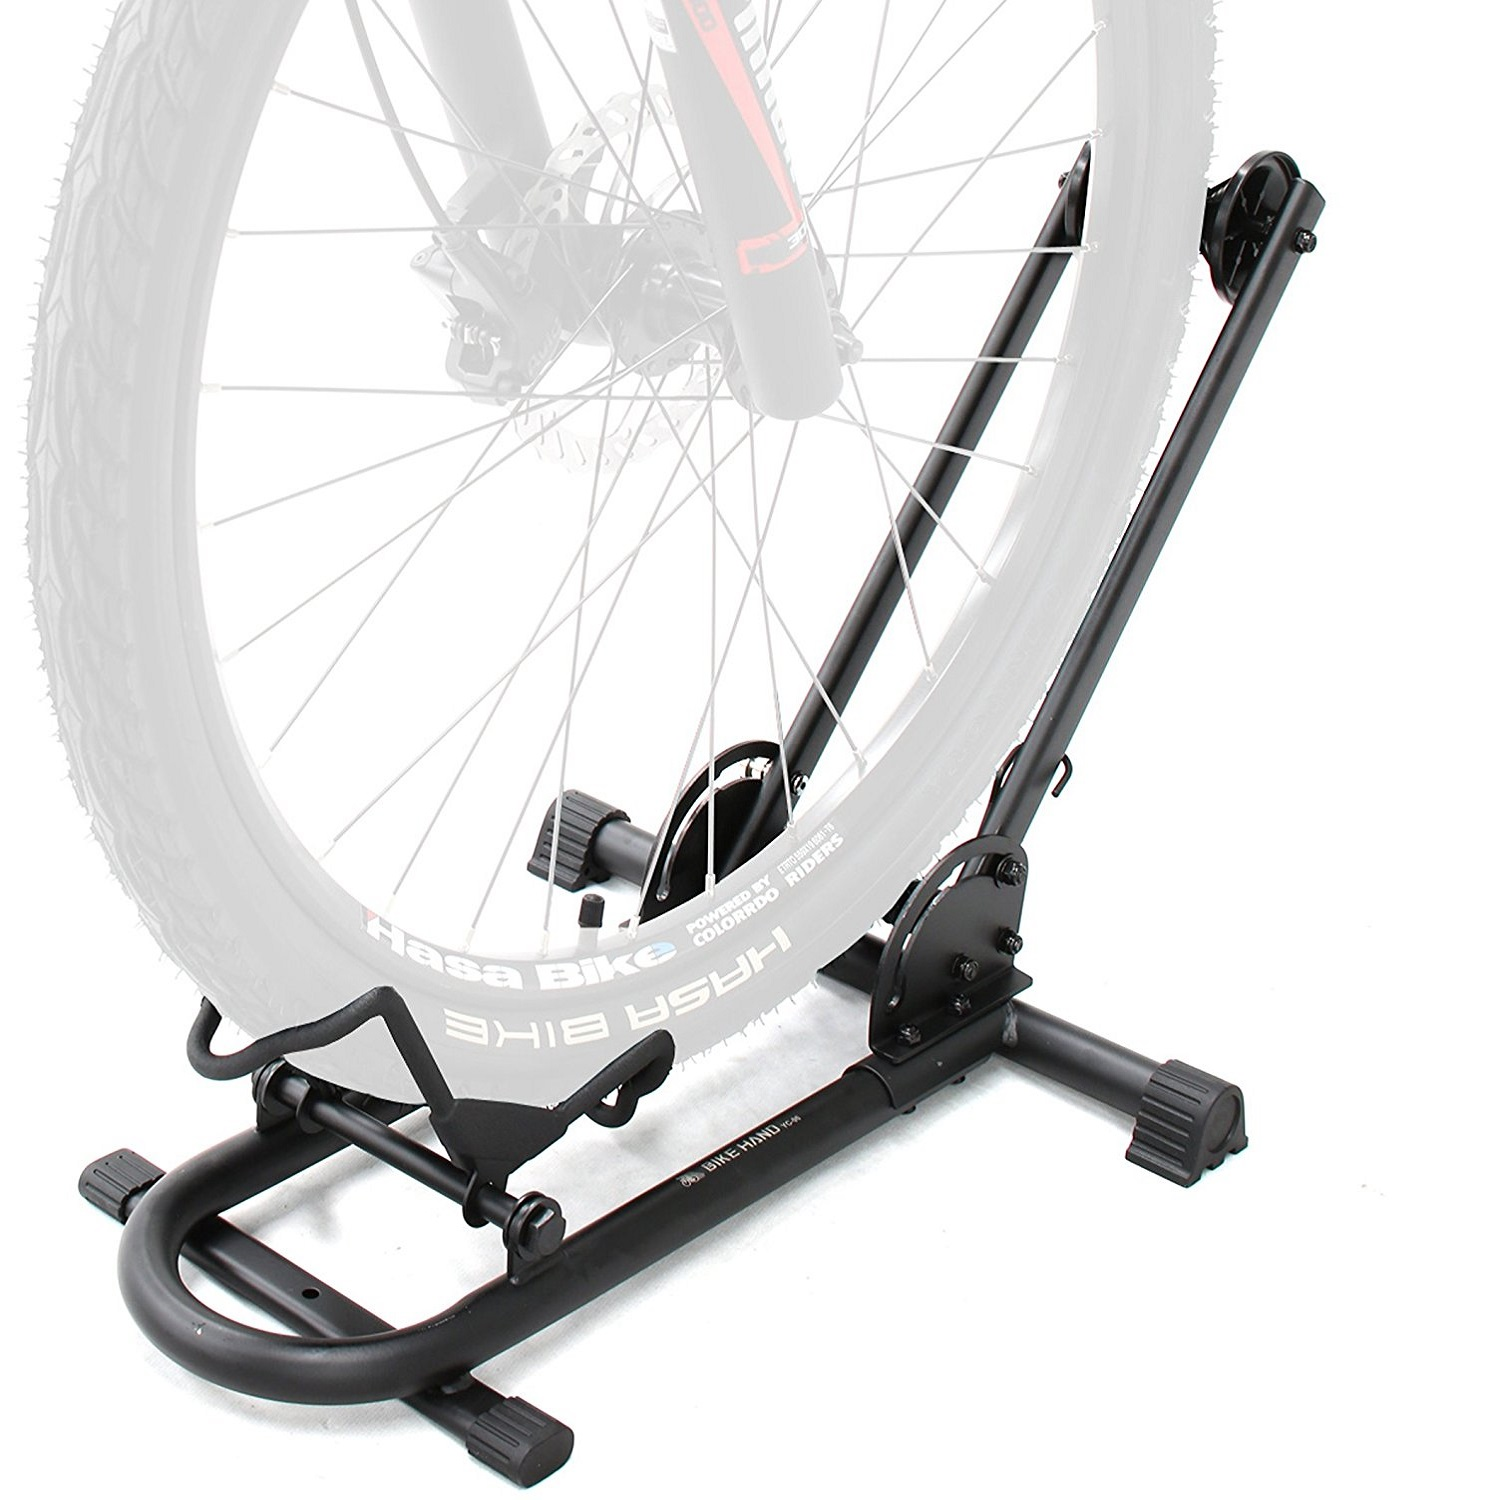 Bikehand Bike Floor Parking Rack